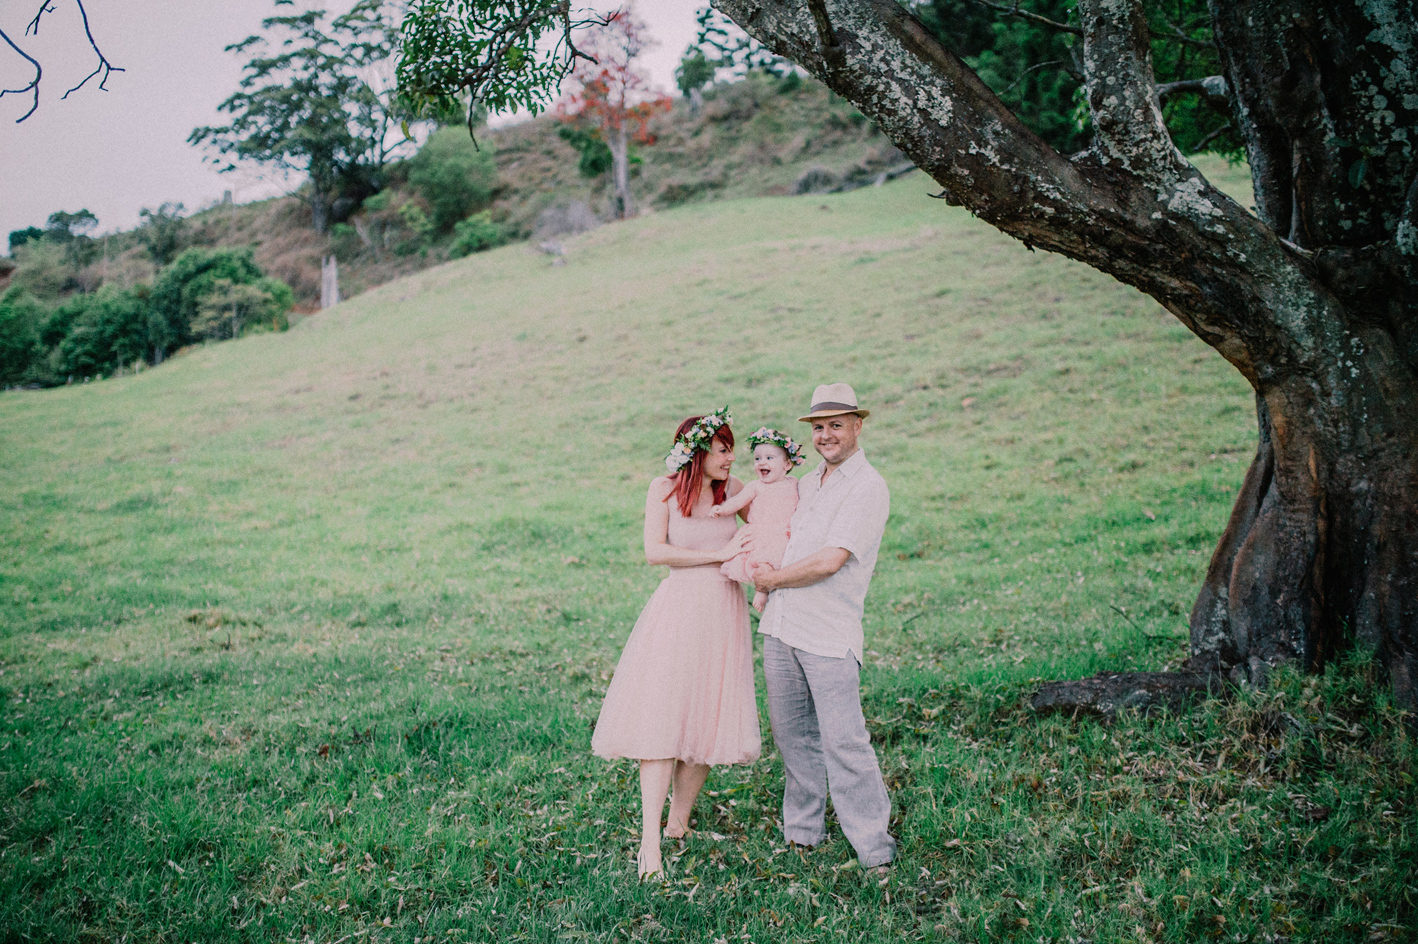 018-family-photos-crown-of-eden-mount-tamborine-sophie-baker-photography